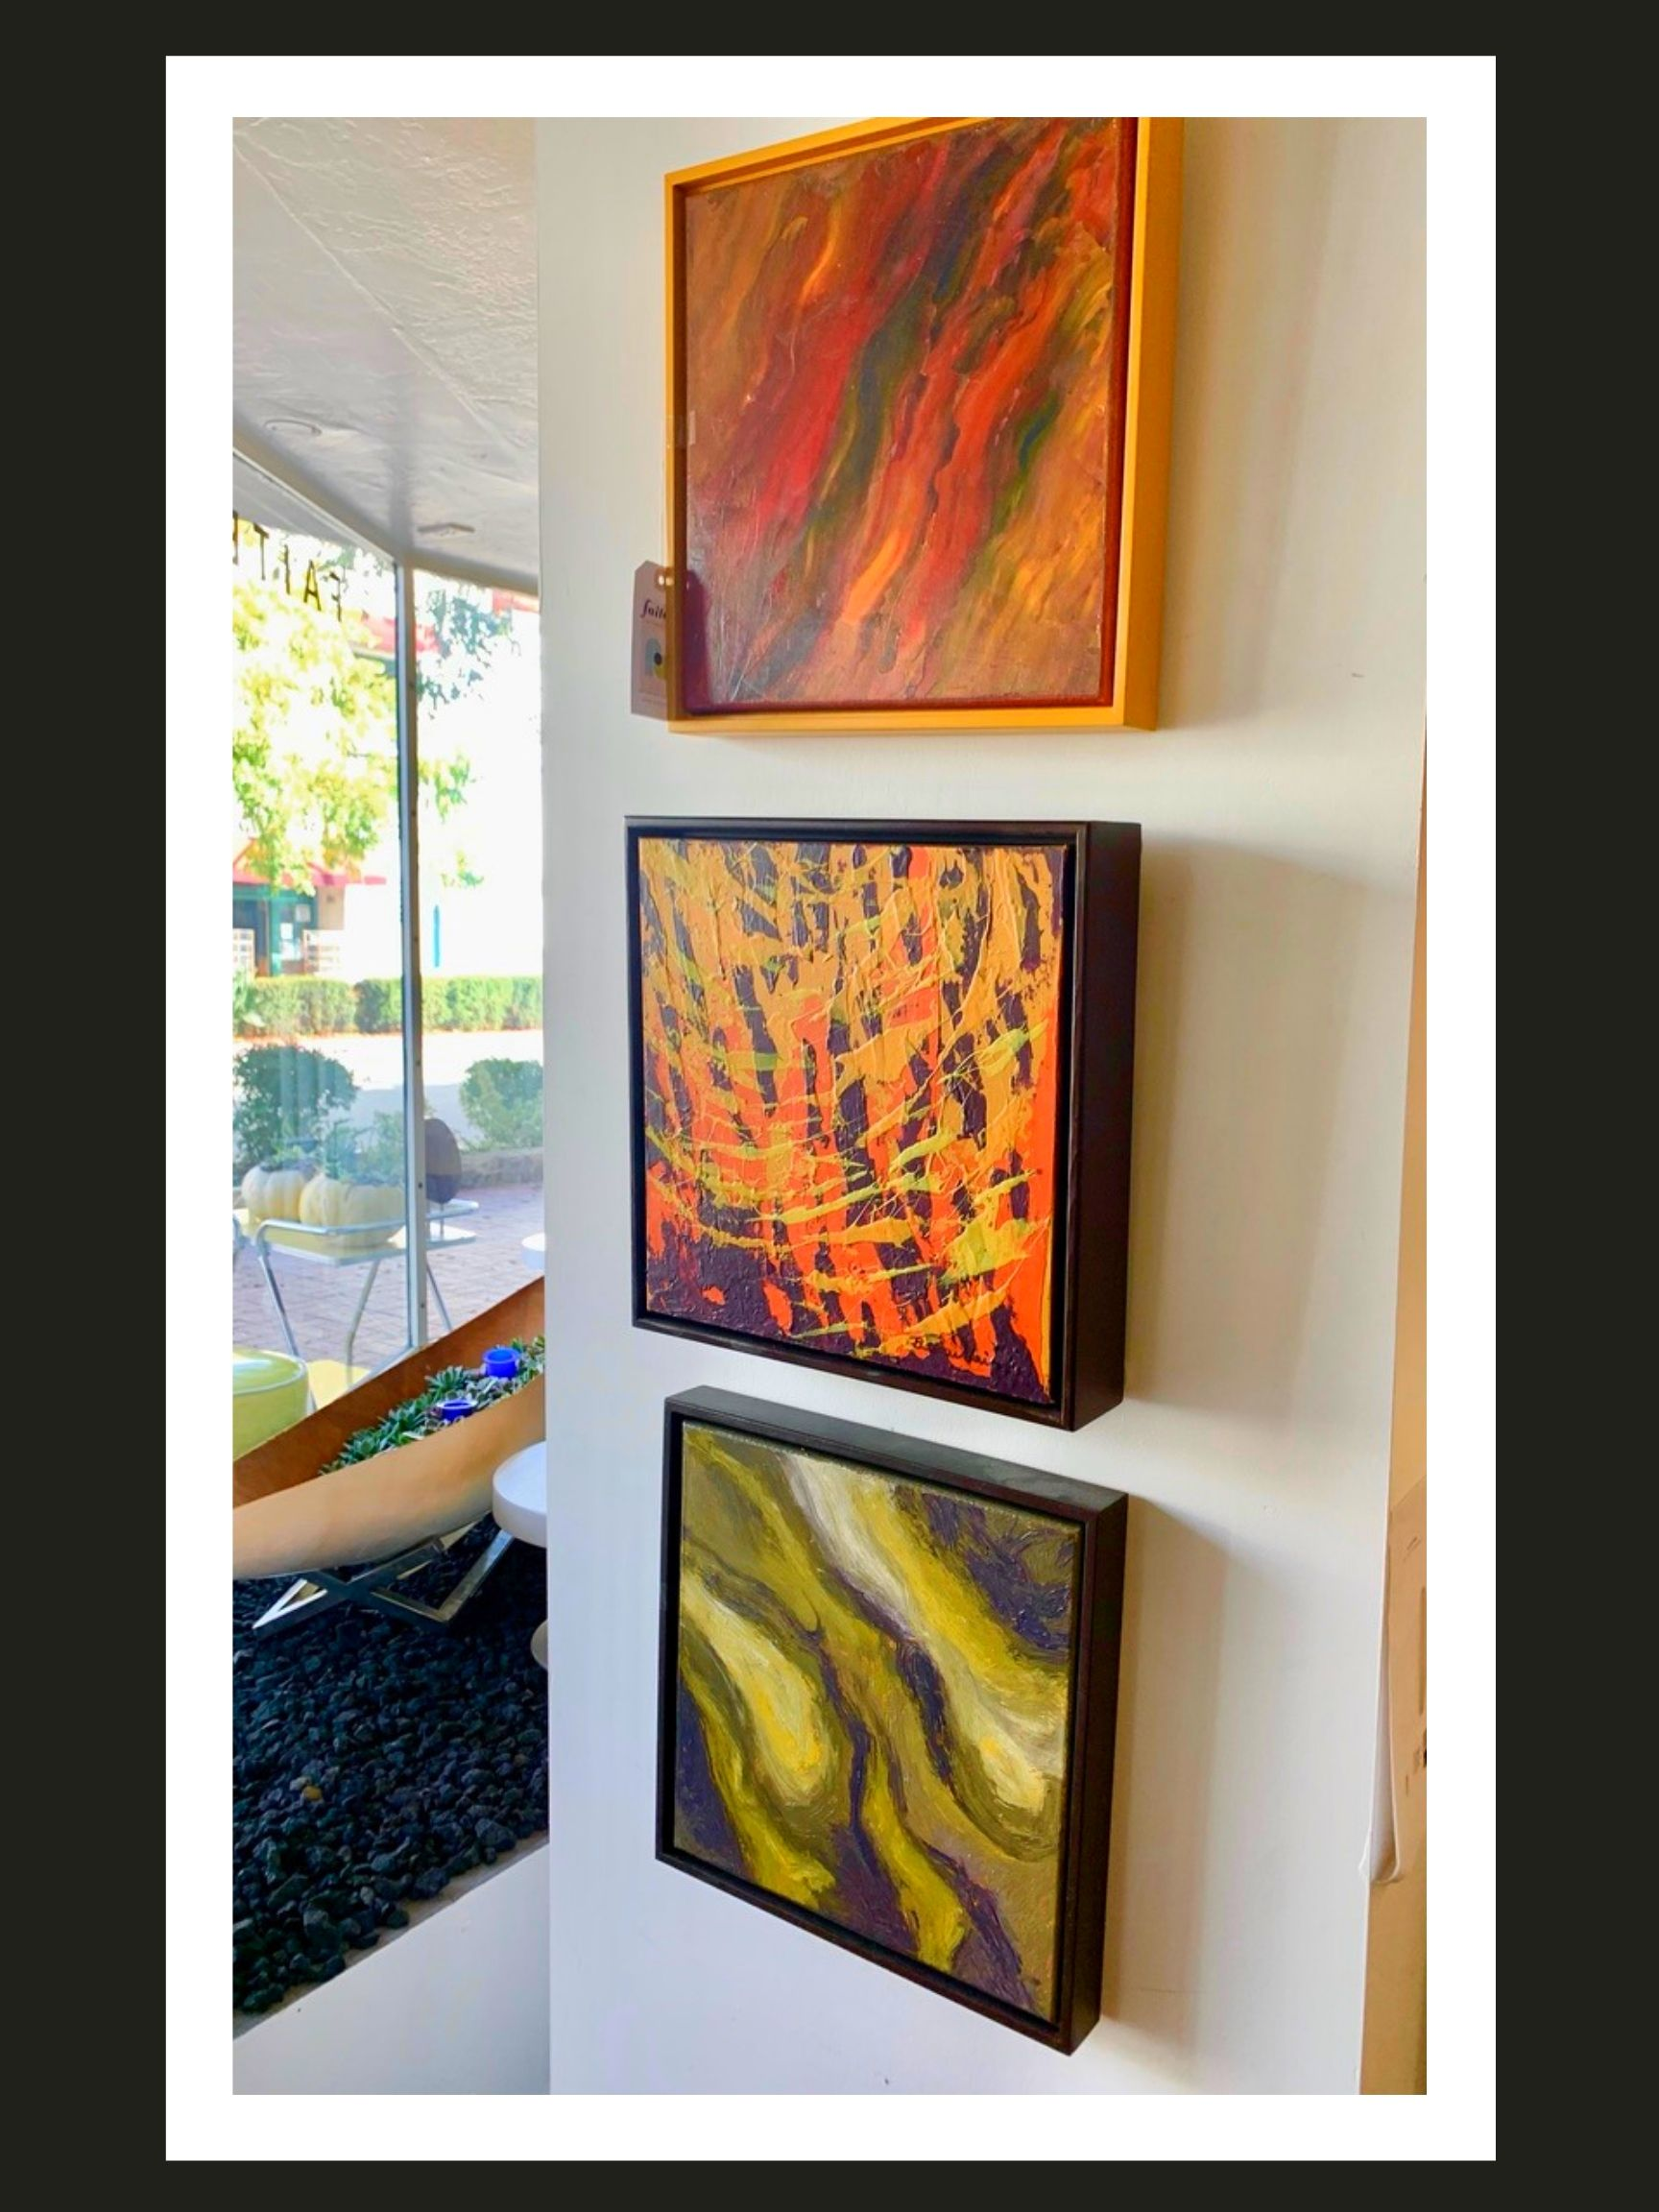 Black Friday Sale at Faitell Attractions - Furniture, Art, Accessories and More!